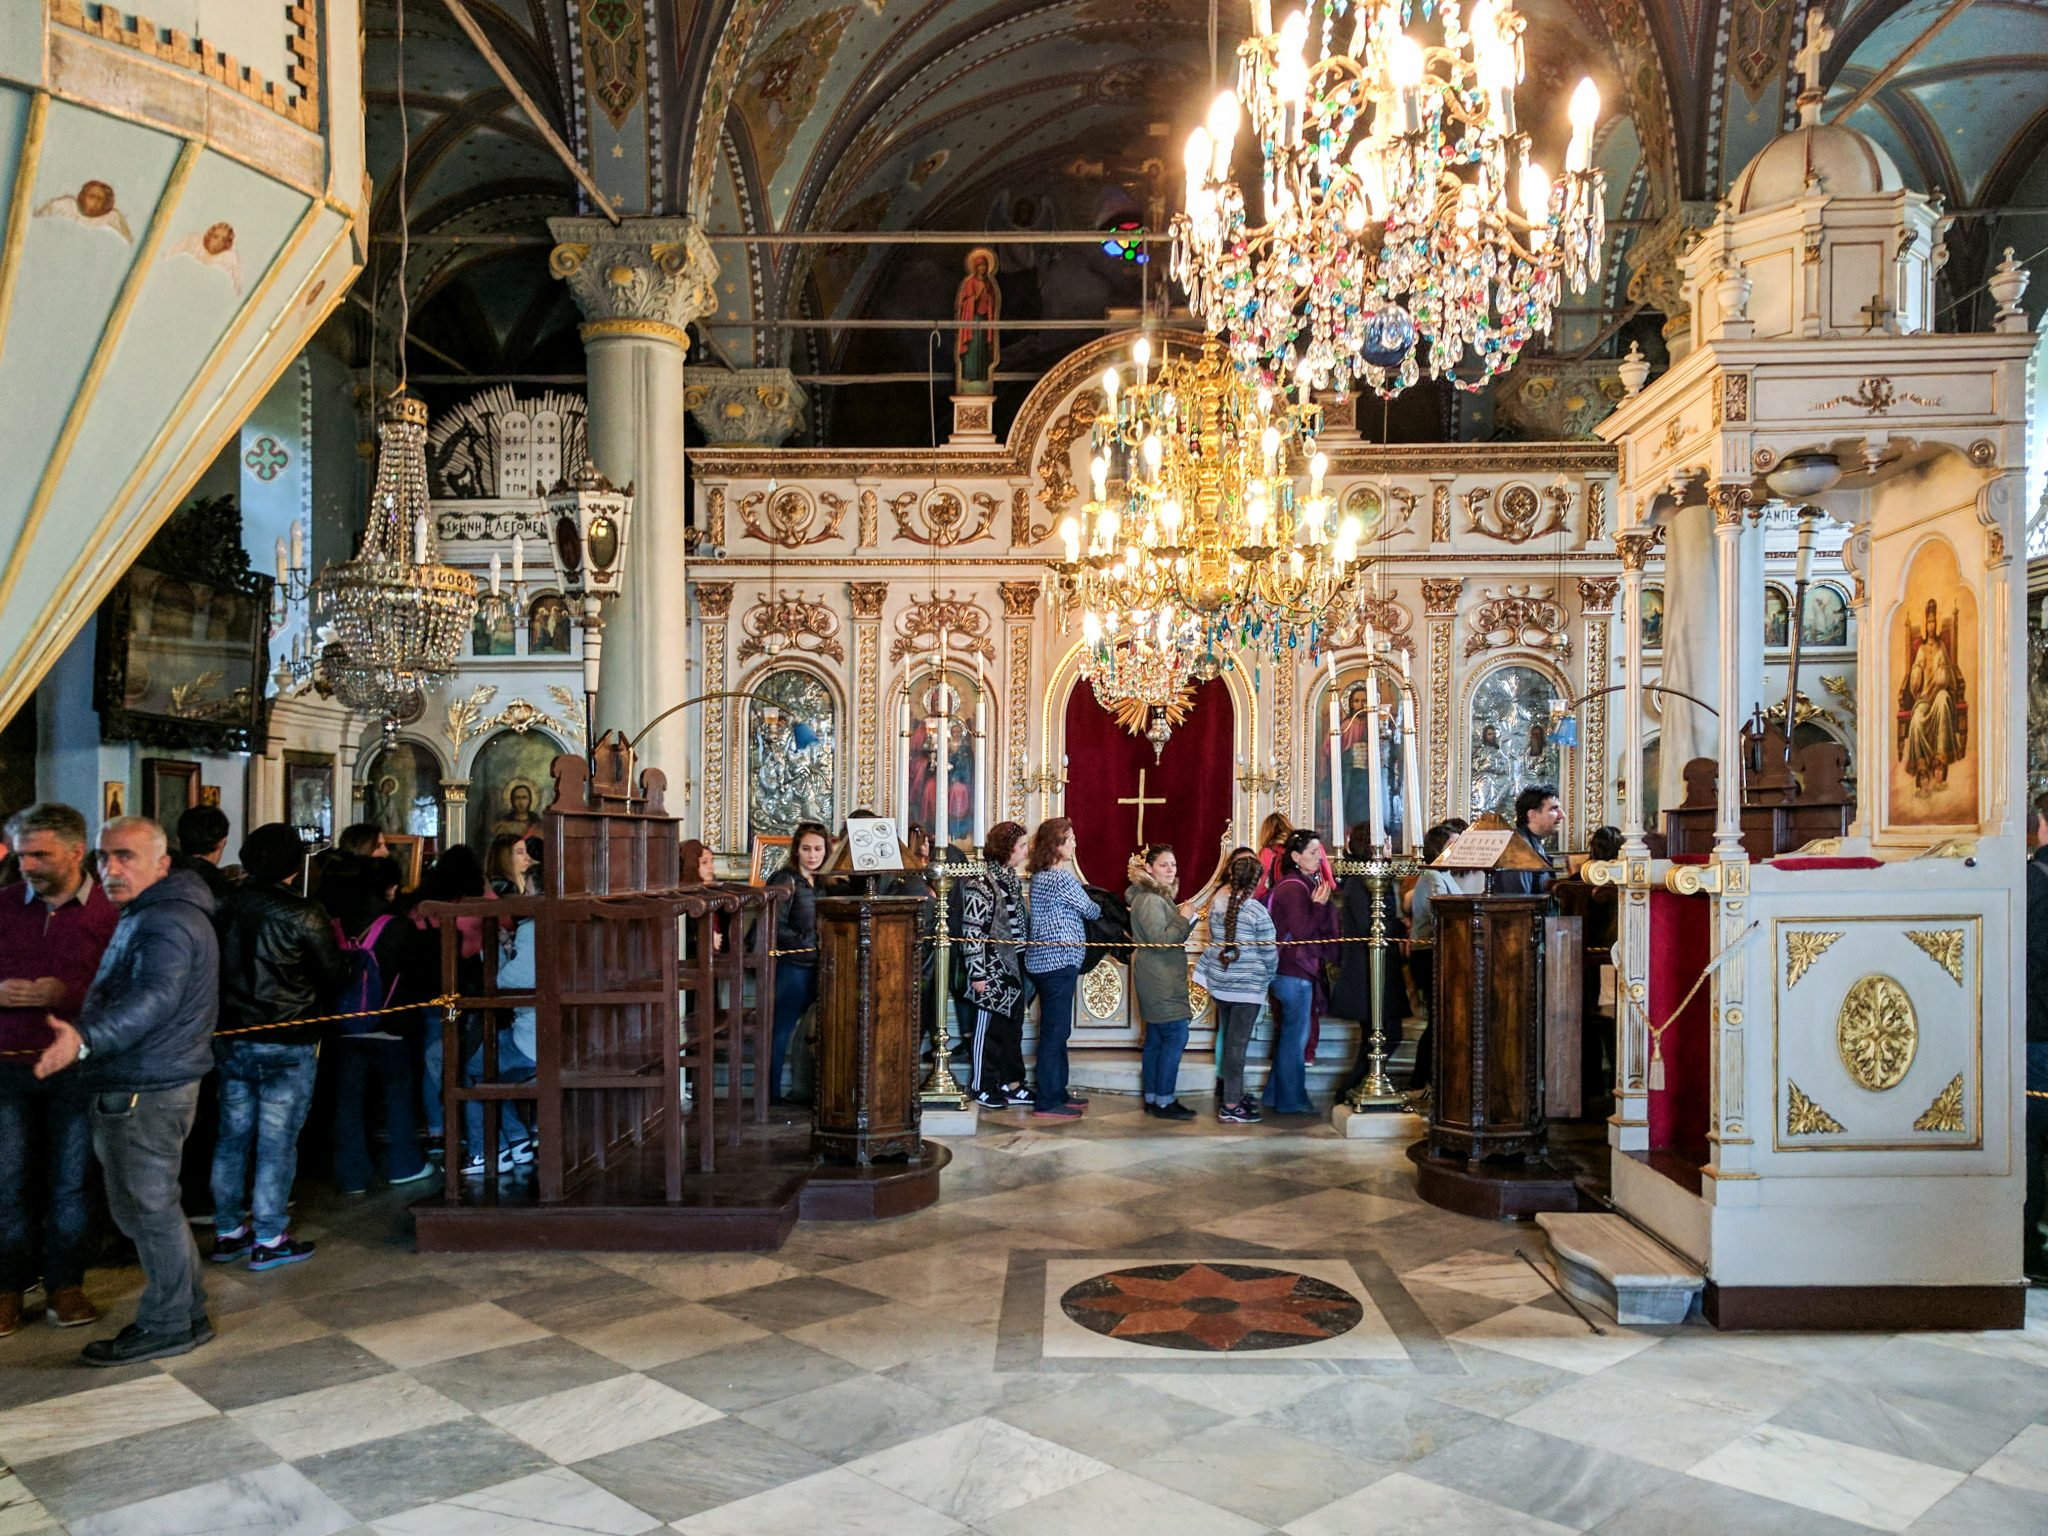 Interior of the St George's Monastery